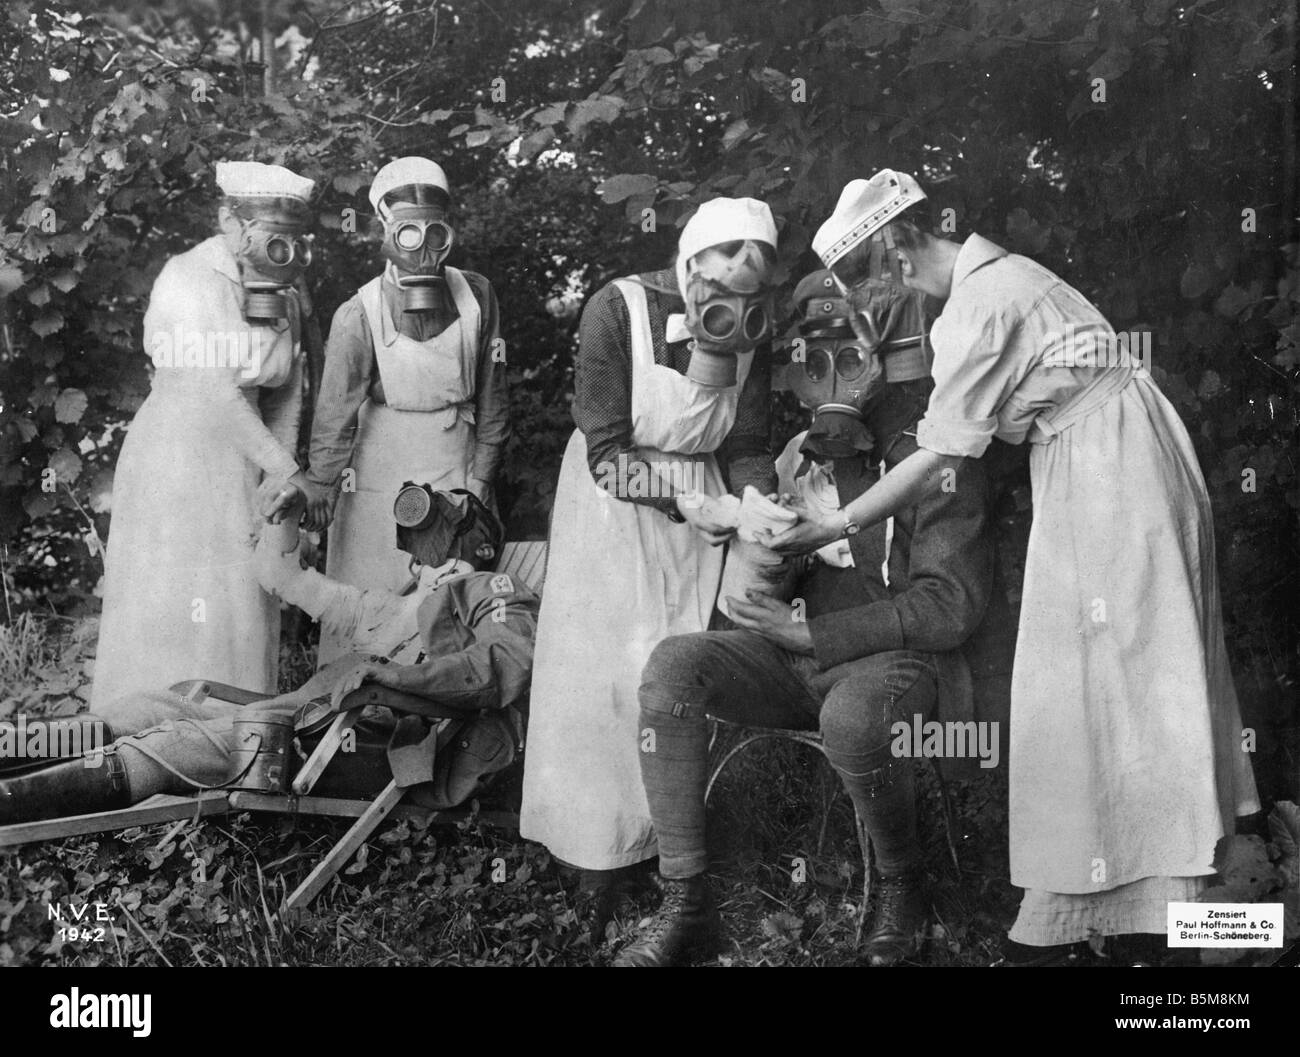 2 G55 G1 1917 4 WW1 First Aid after gas attack Photo History World War One Gas attacks On the Western Front Nurses - Stock Image